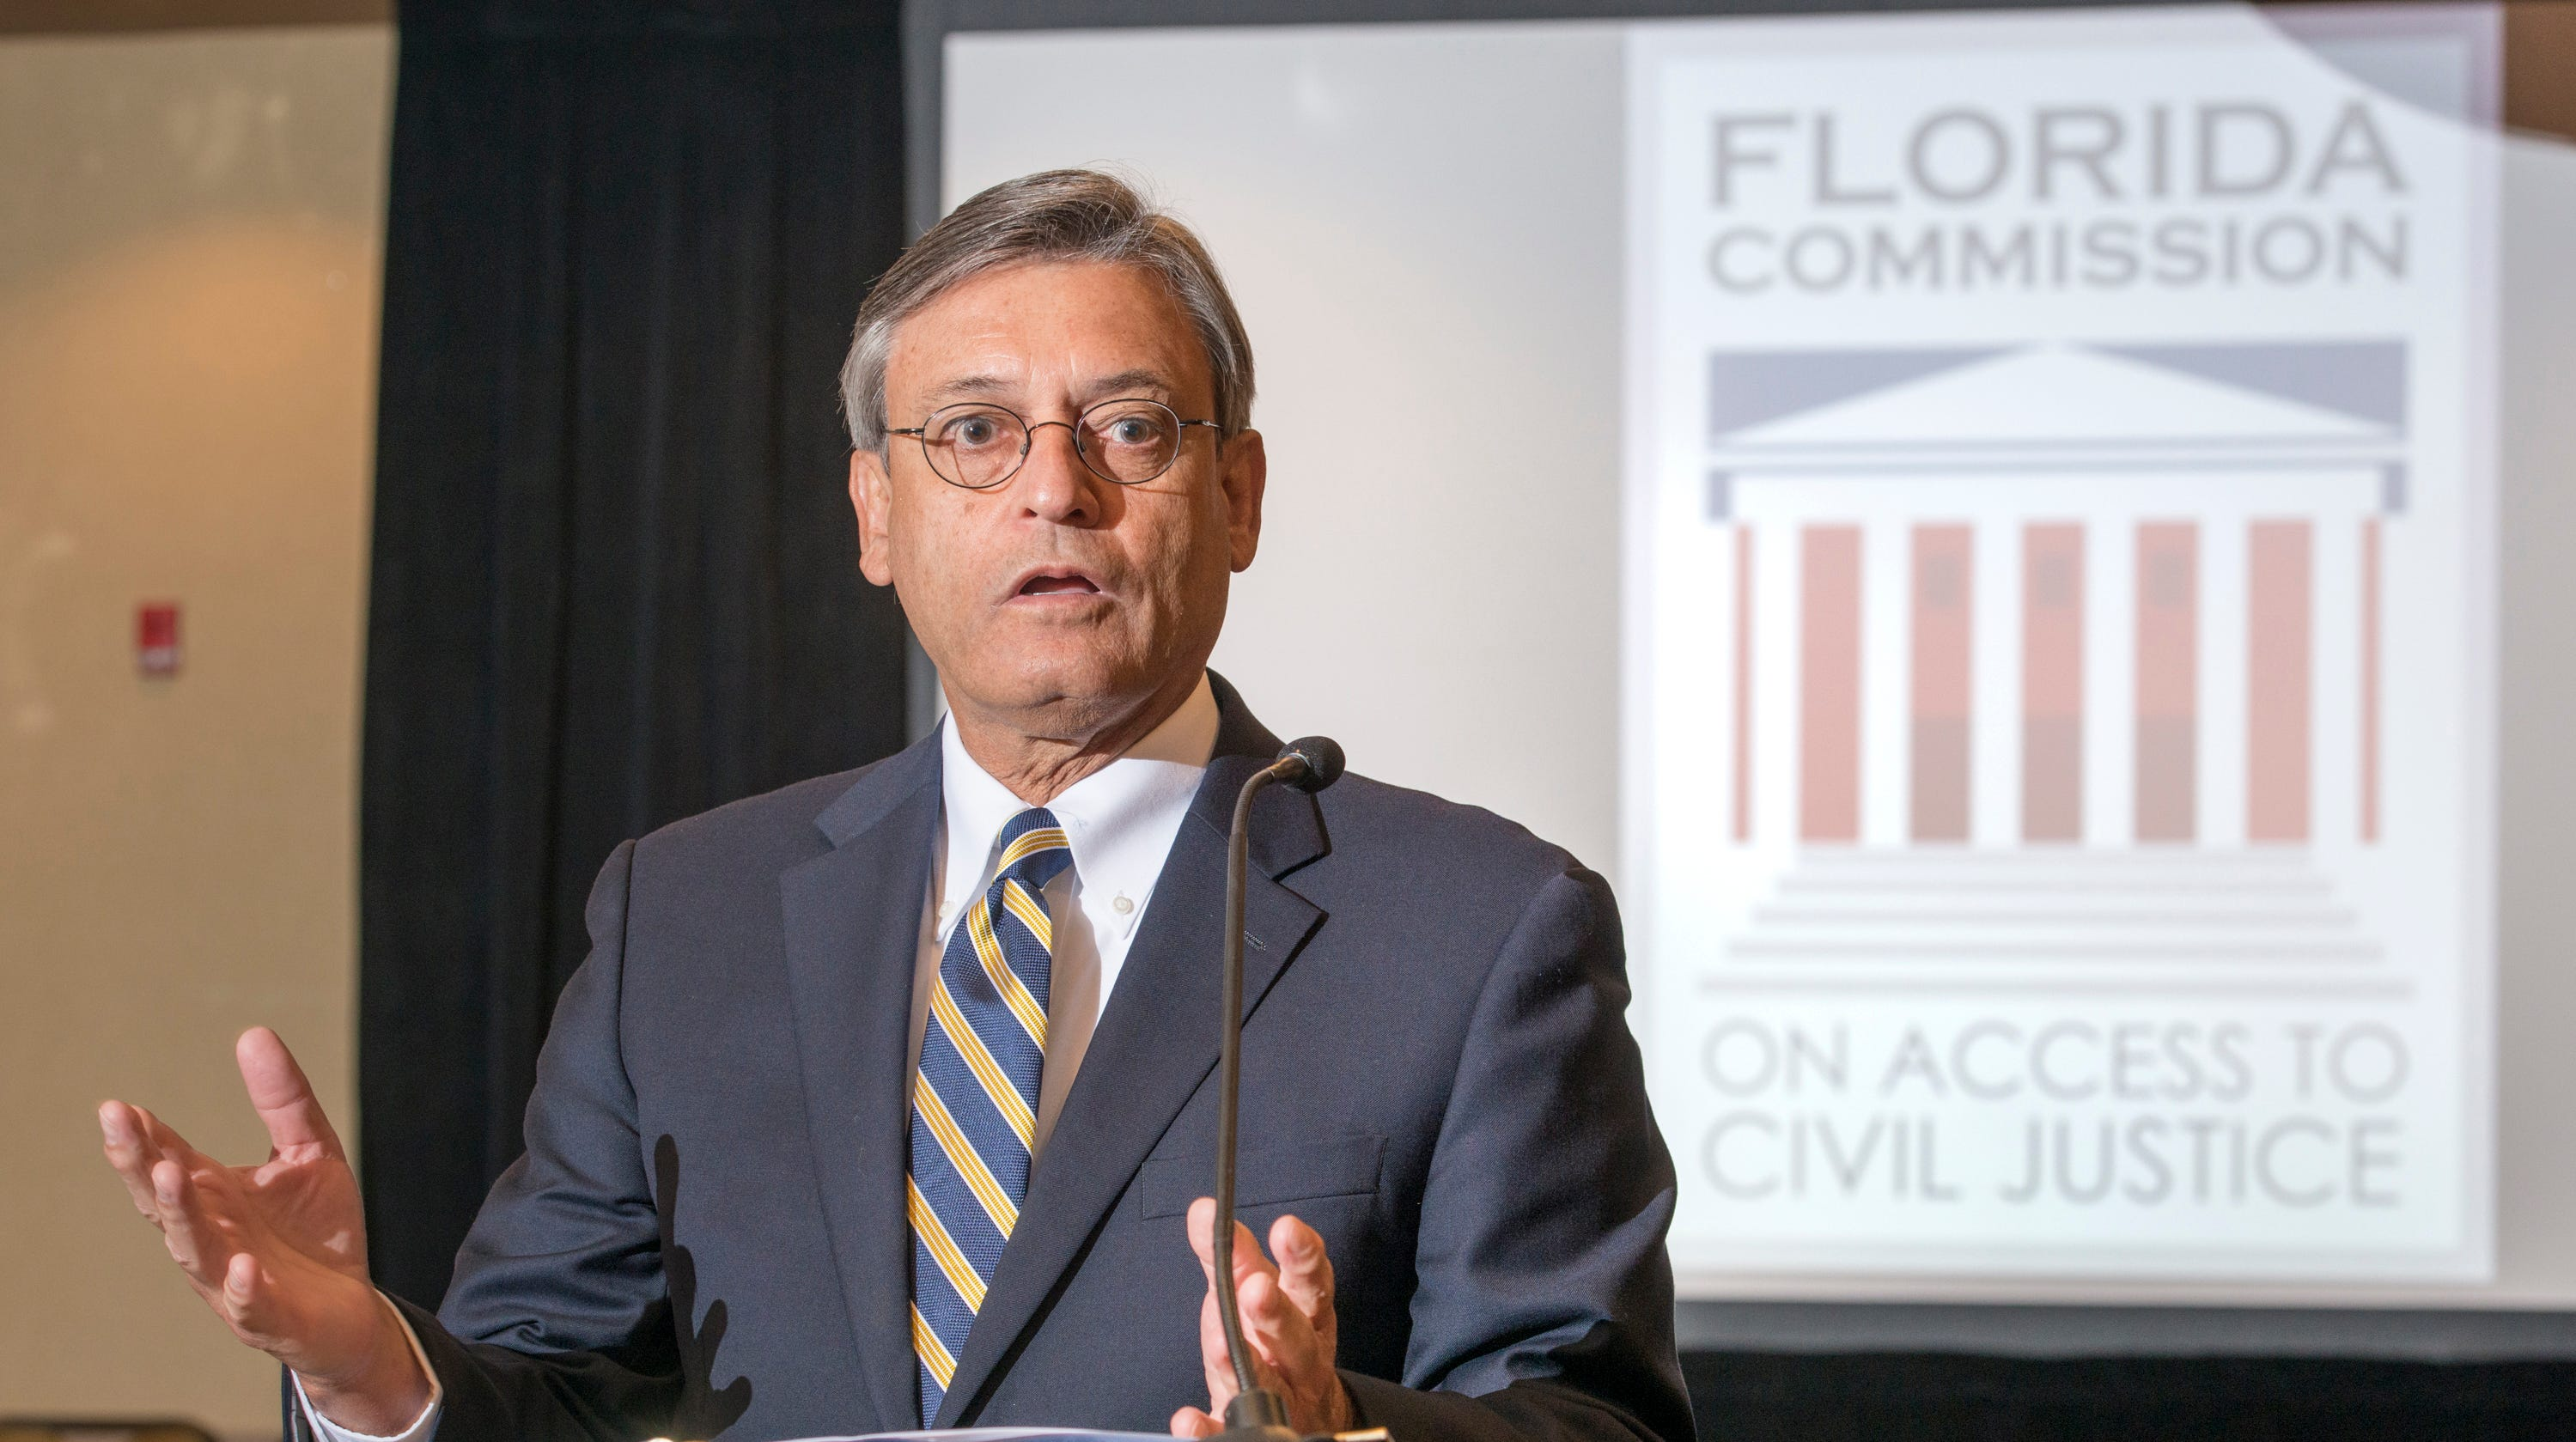 Supreme Court of Florida justice Jorge Labarga speaks as the Florida Commission on Access to Civil Justice discusses veterans issues at the Hilton Garden Inn in Pensacola on Friday, August 10, 2018.